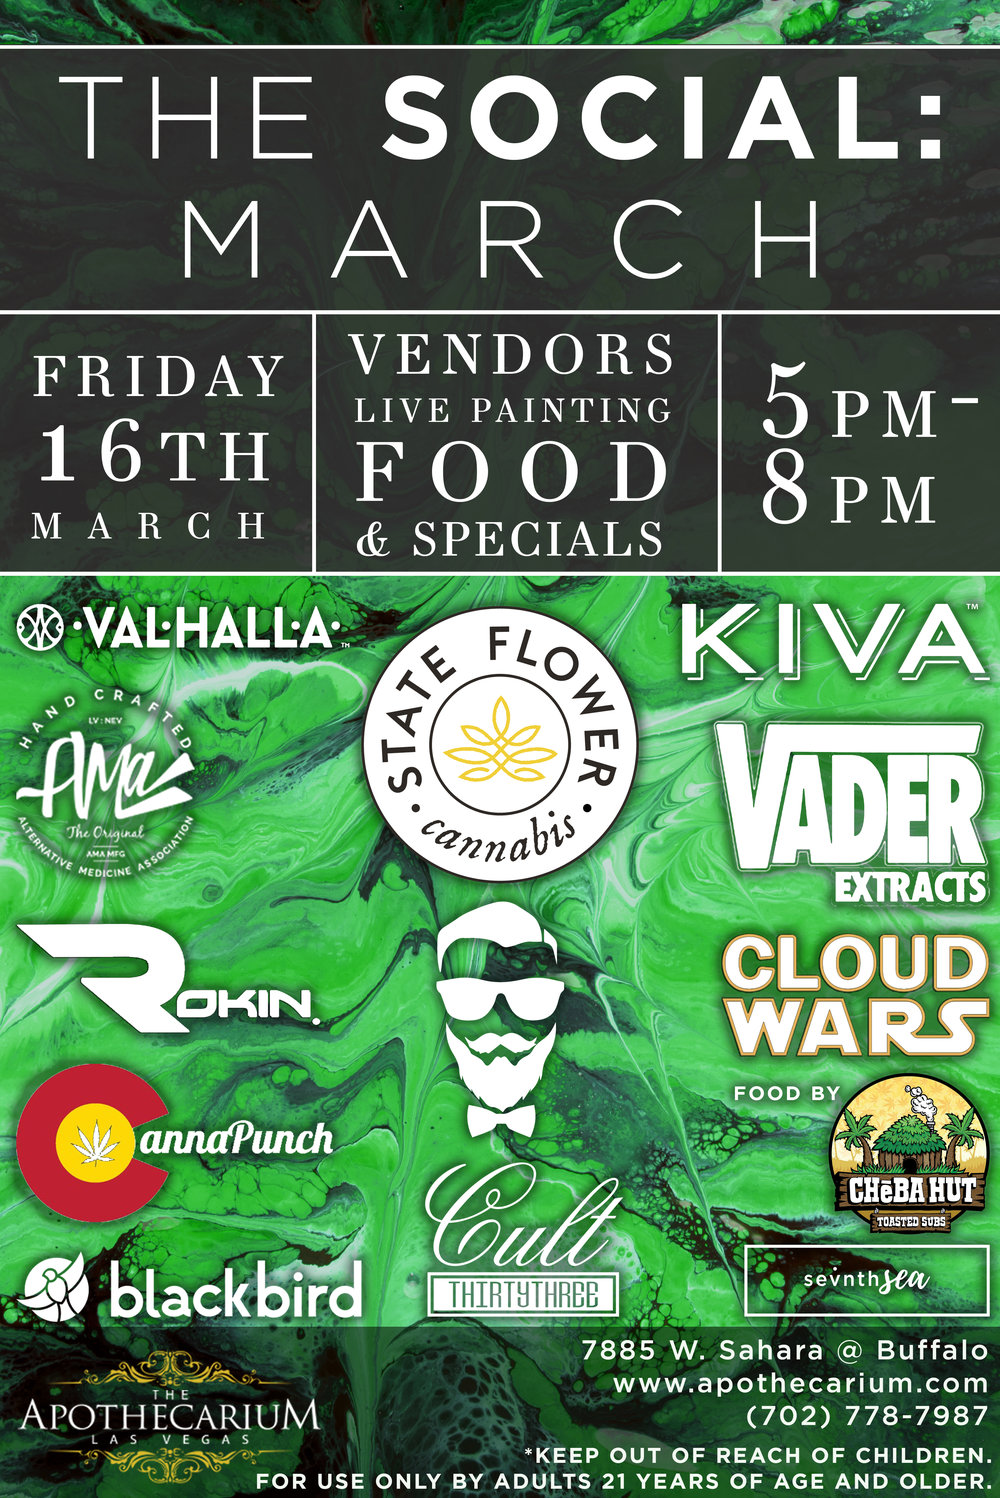 the apothecarium las vegas a medical and recreational cannabis dispensary discuss their new event the social for the month of march